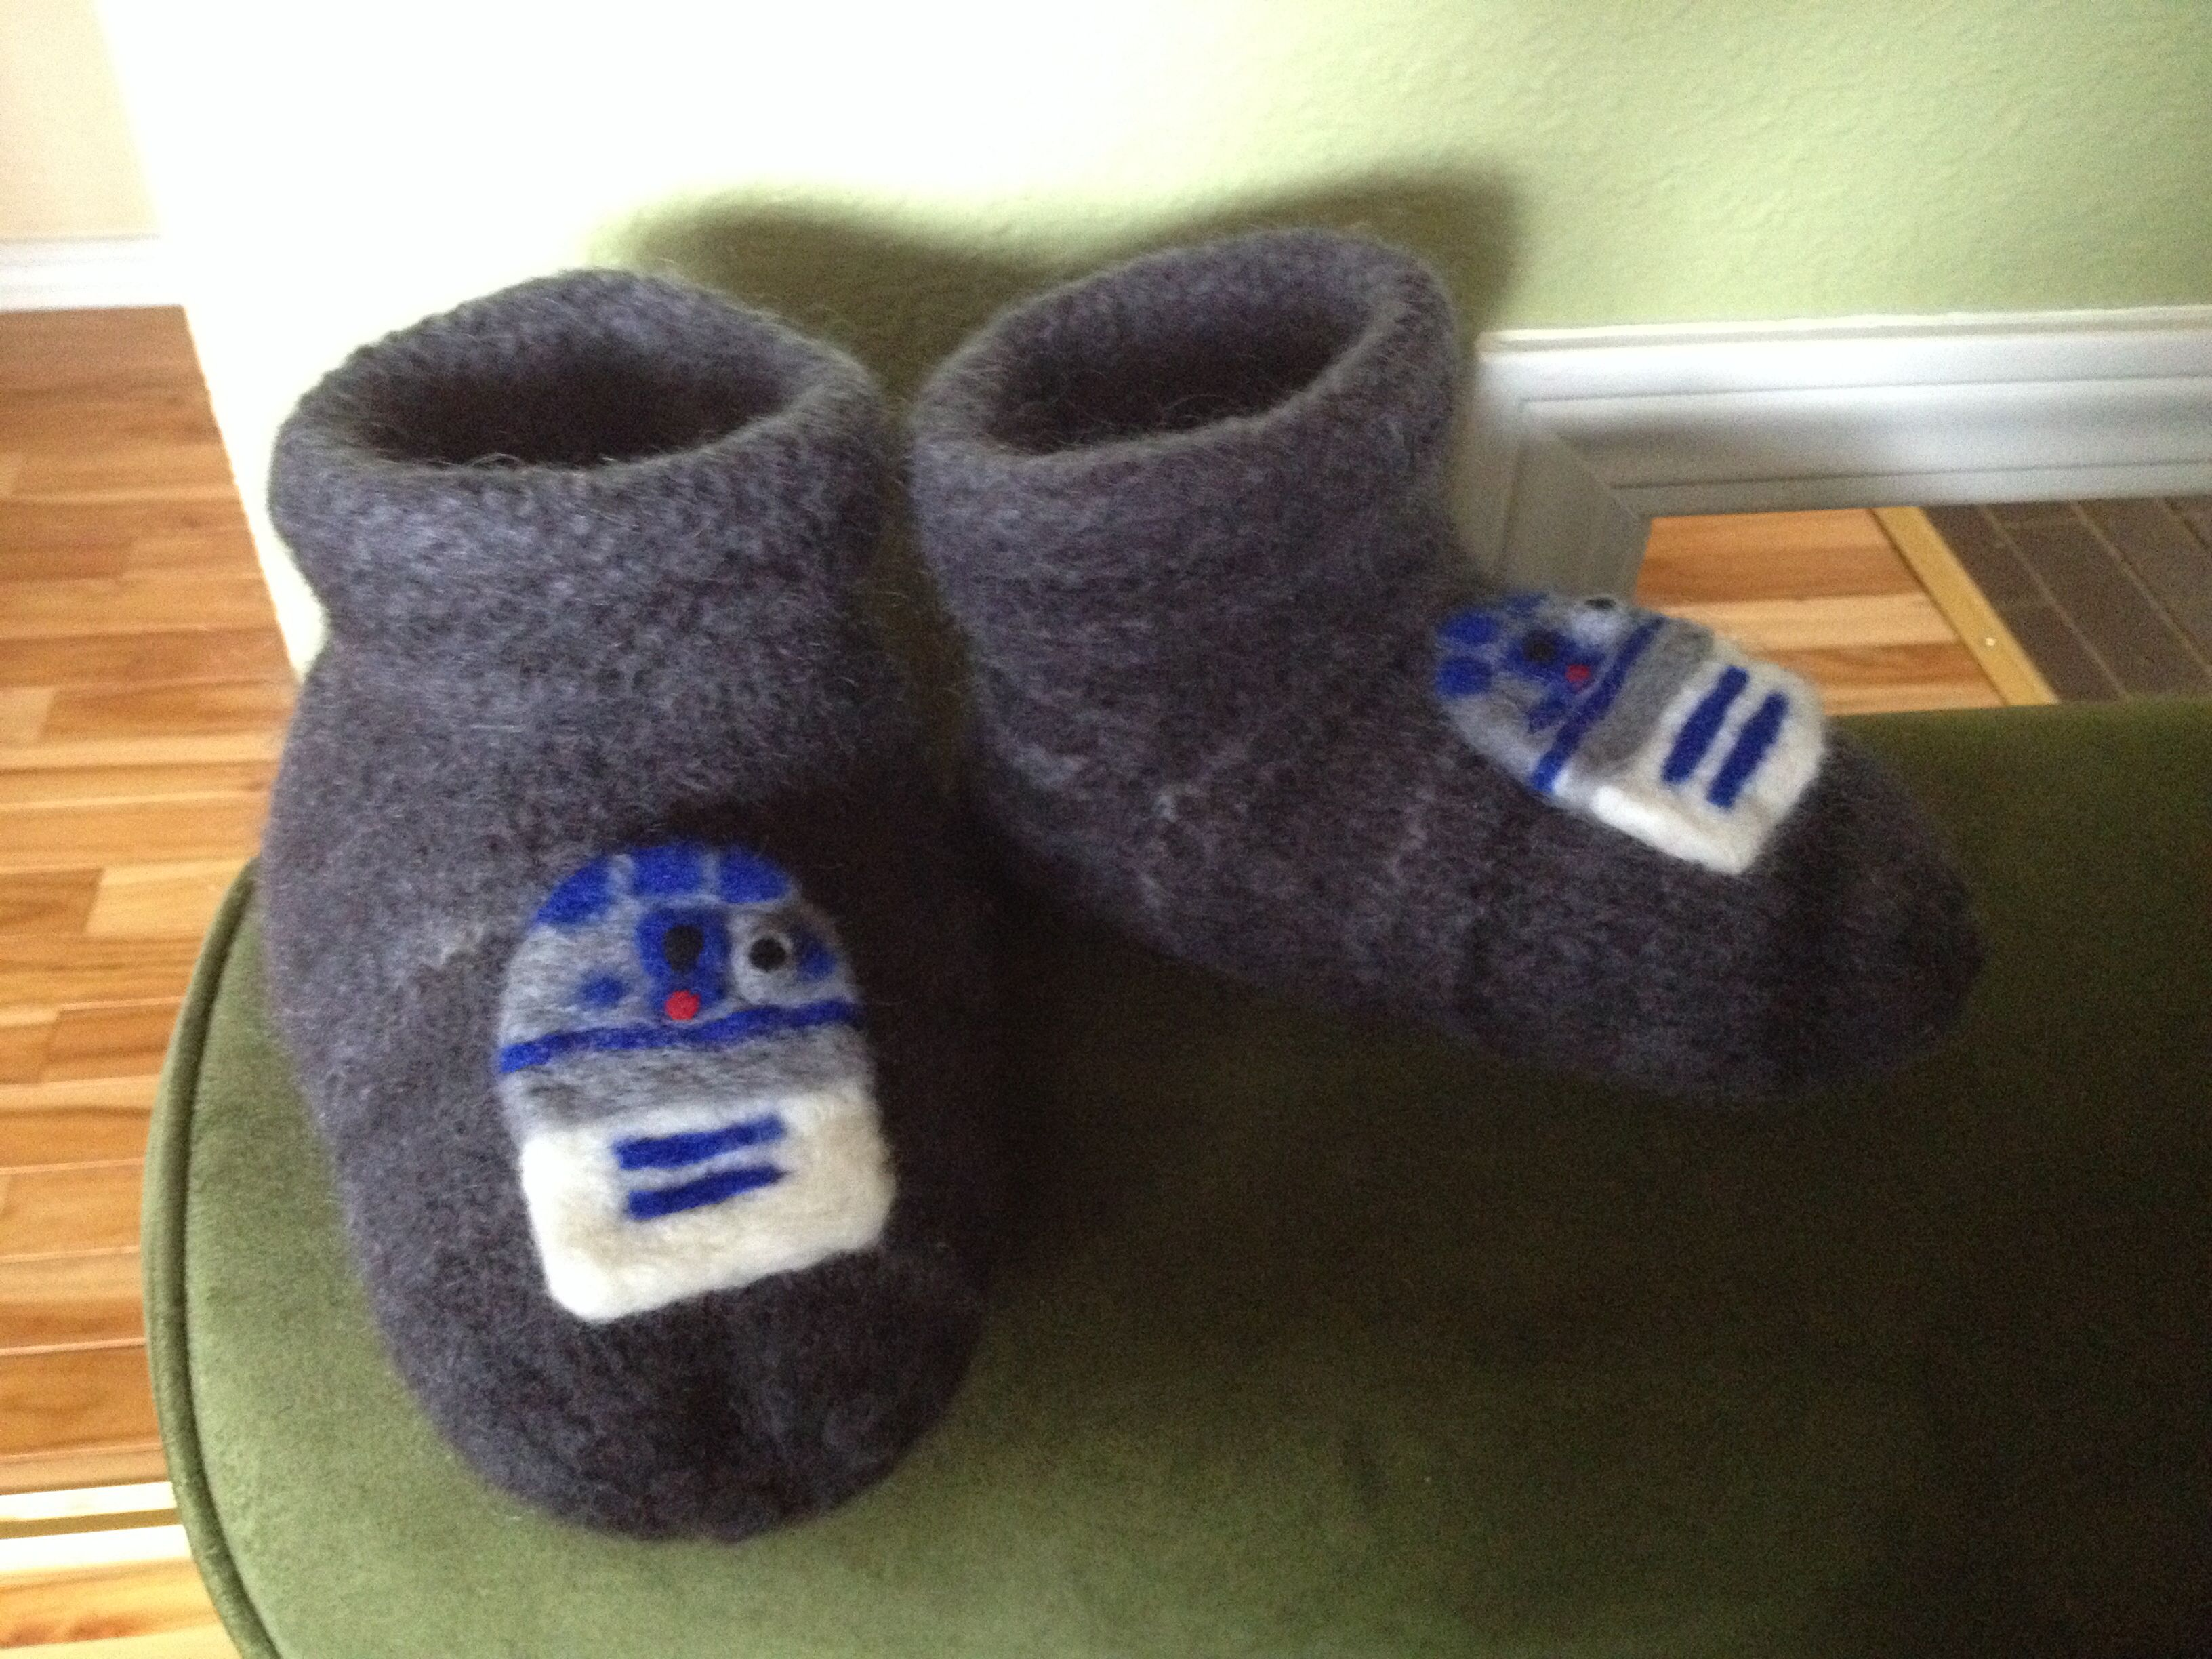 R2D2 Felted Slippers I knit then felted the slippers. The R2D2 motif was needle felted then sewn on.